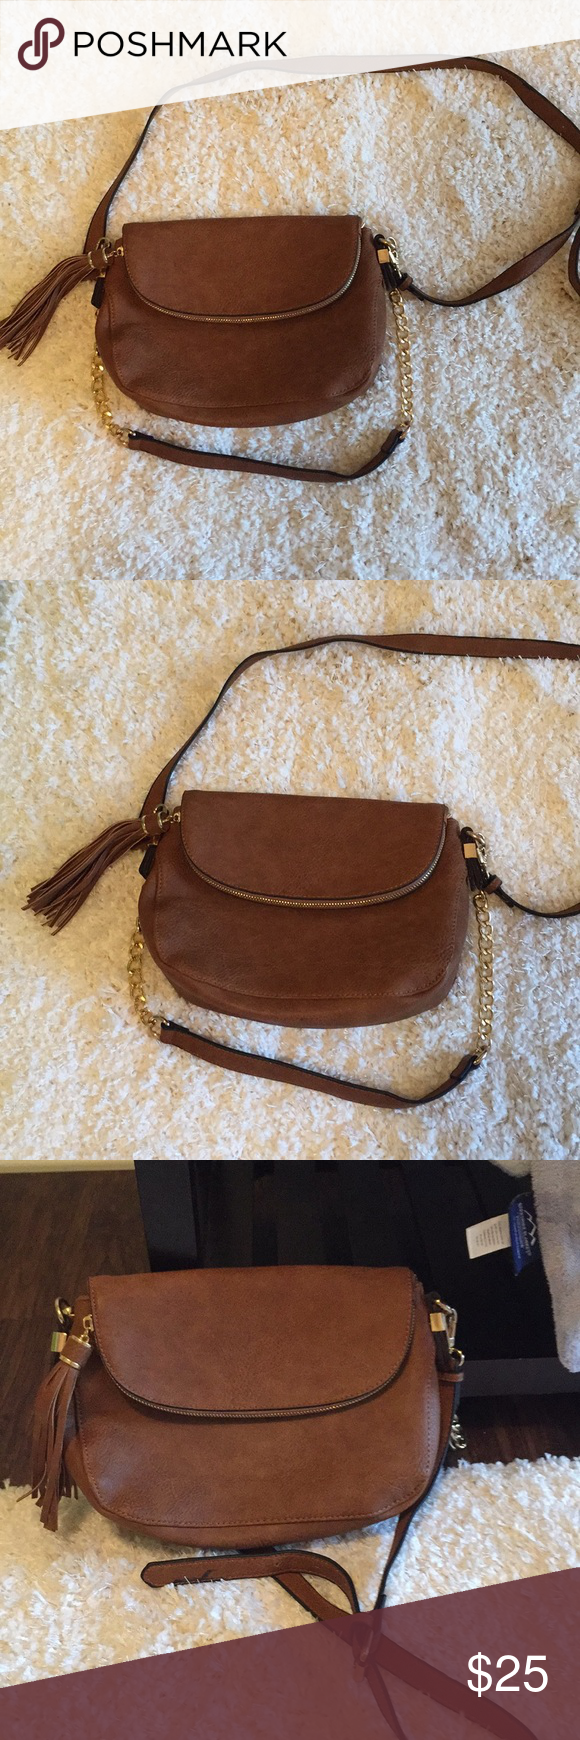 BRAND NEW purse! Never used! Lost my receipt and was not